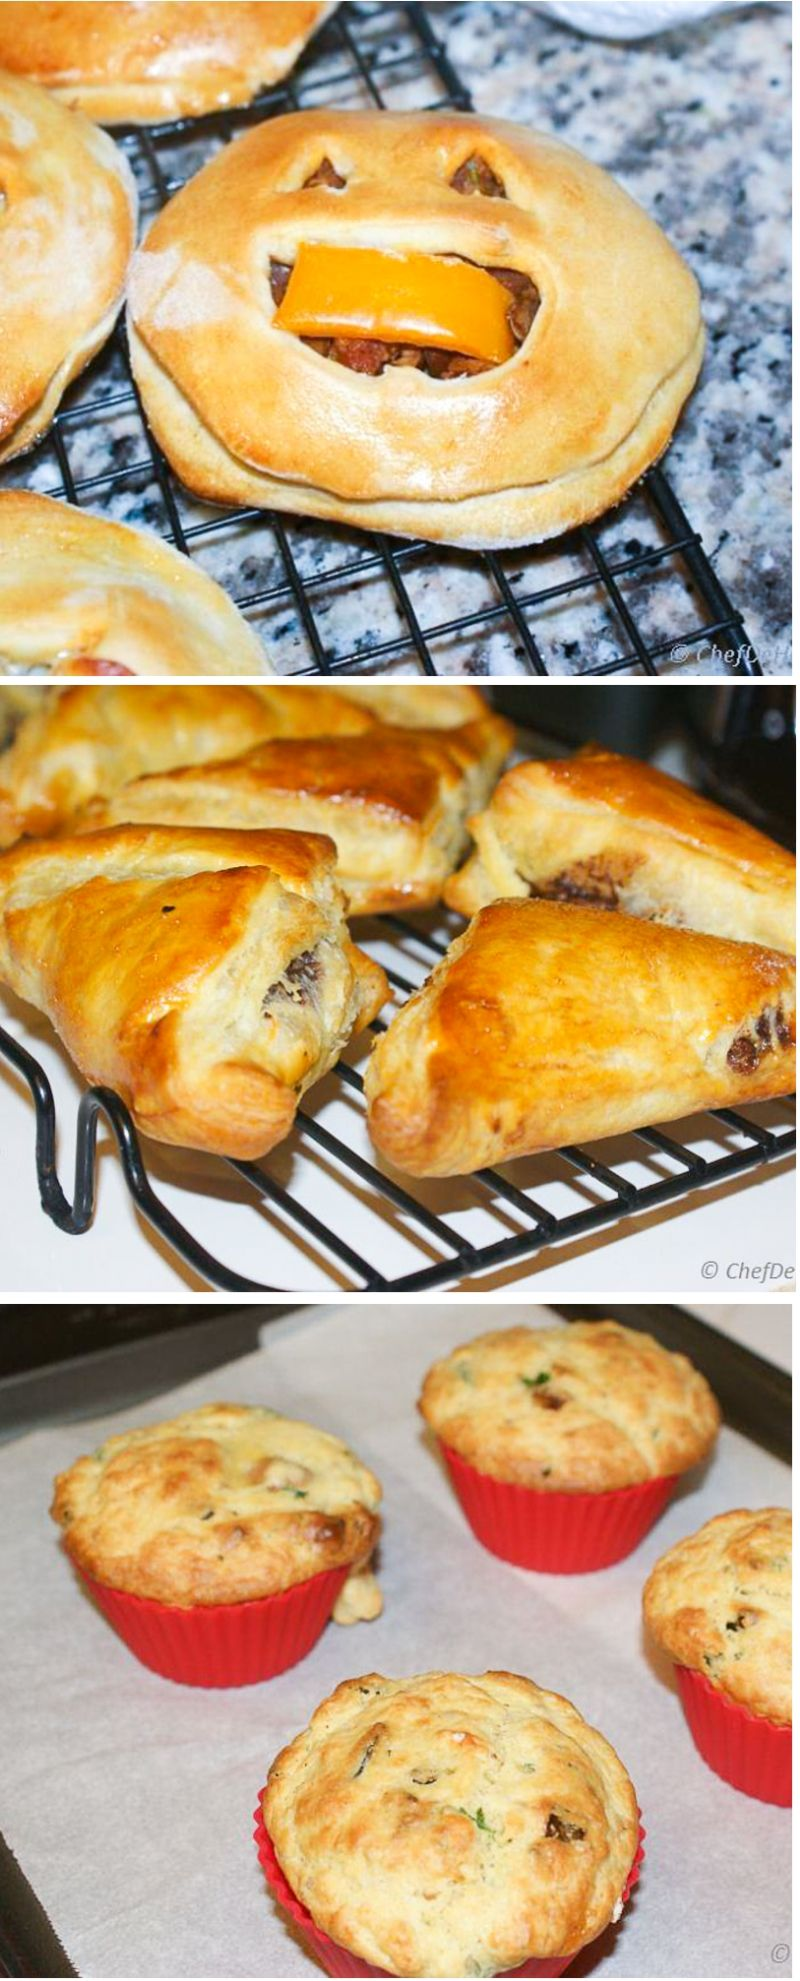 savory bake sale ideas | chefdehome | breads, rolls and muffins